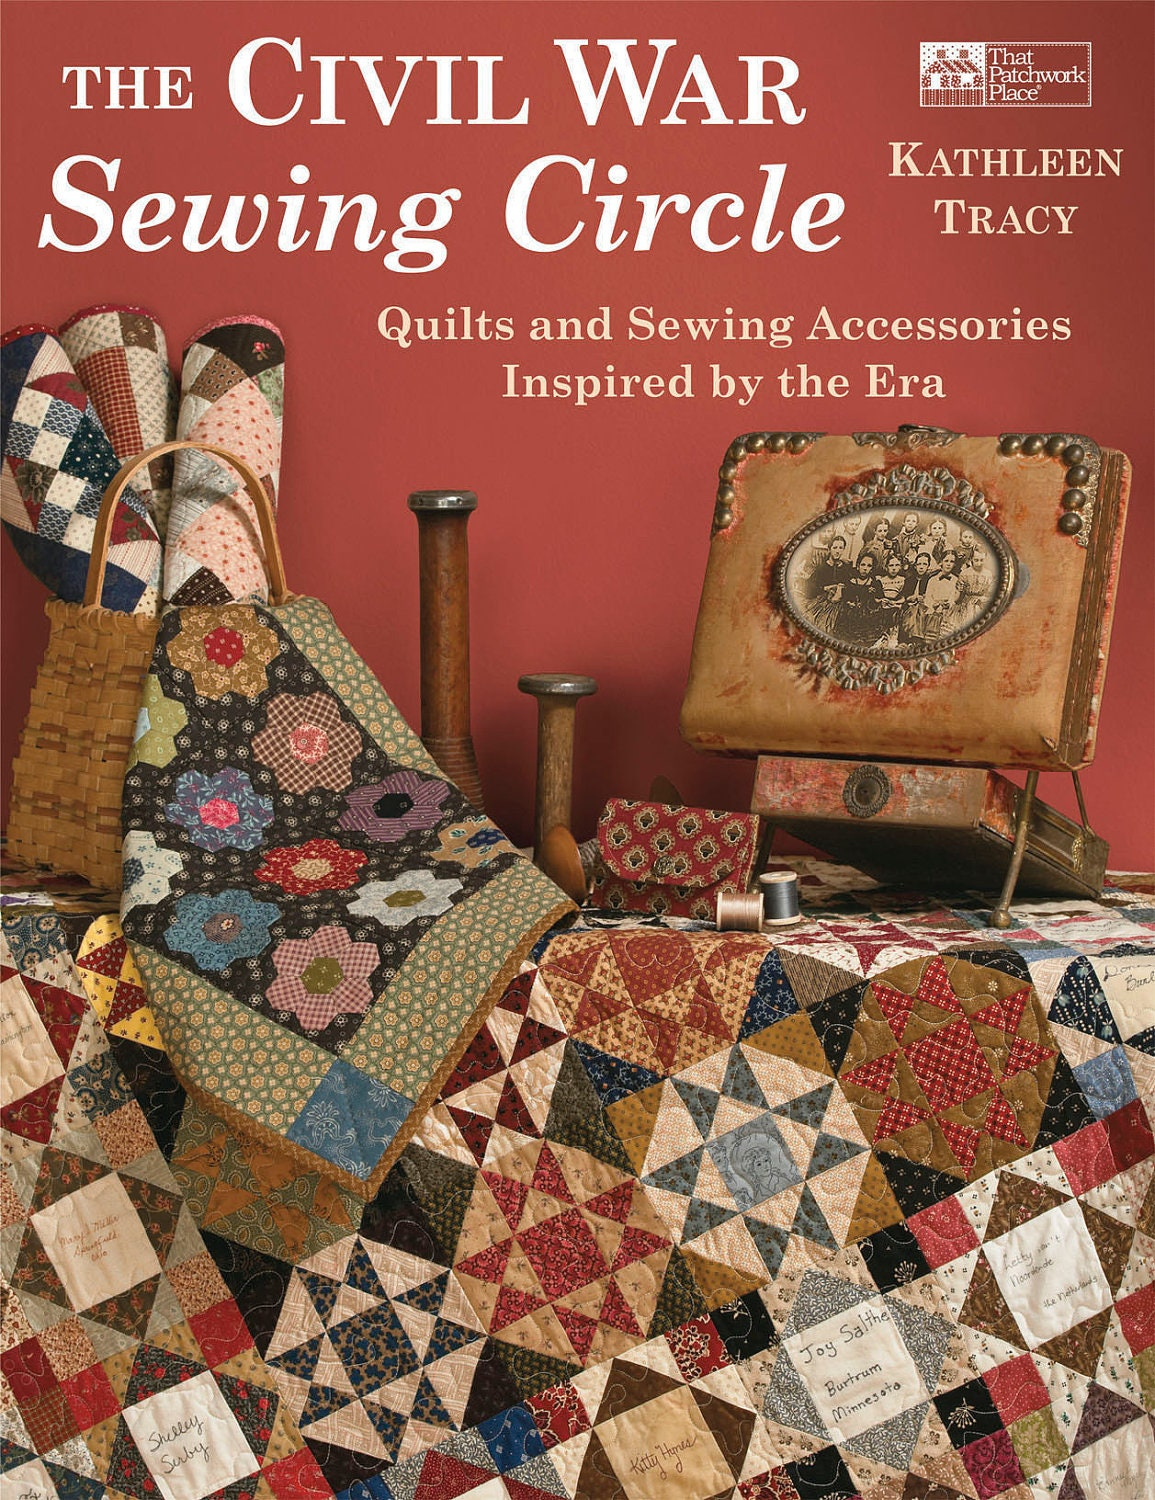 The Civil War Sewing Circle quilting book by KathleenTracy